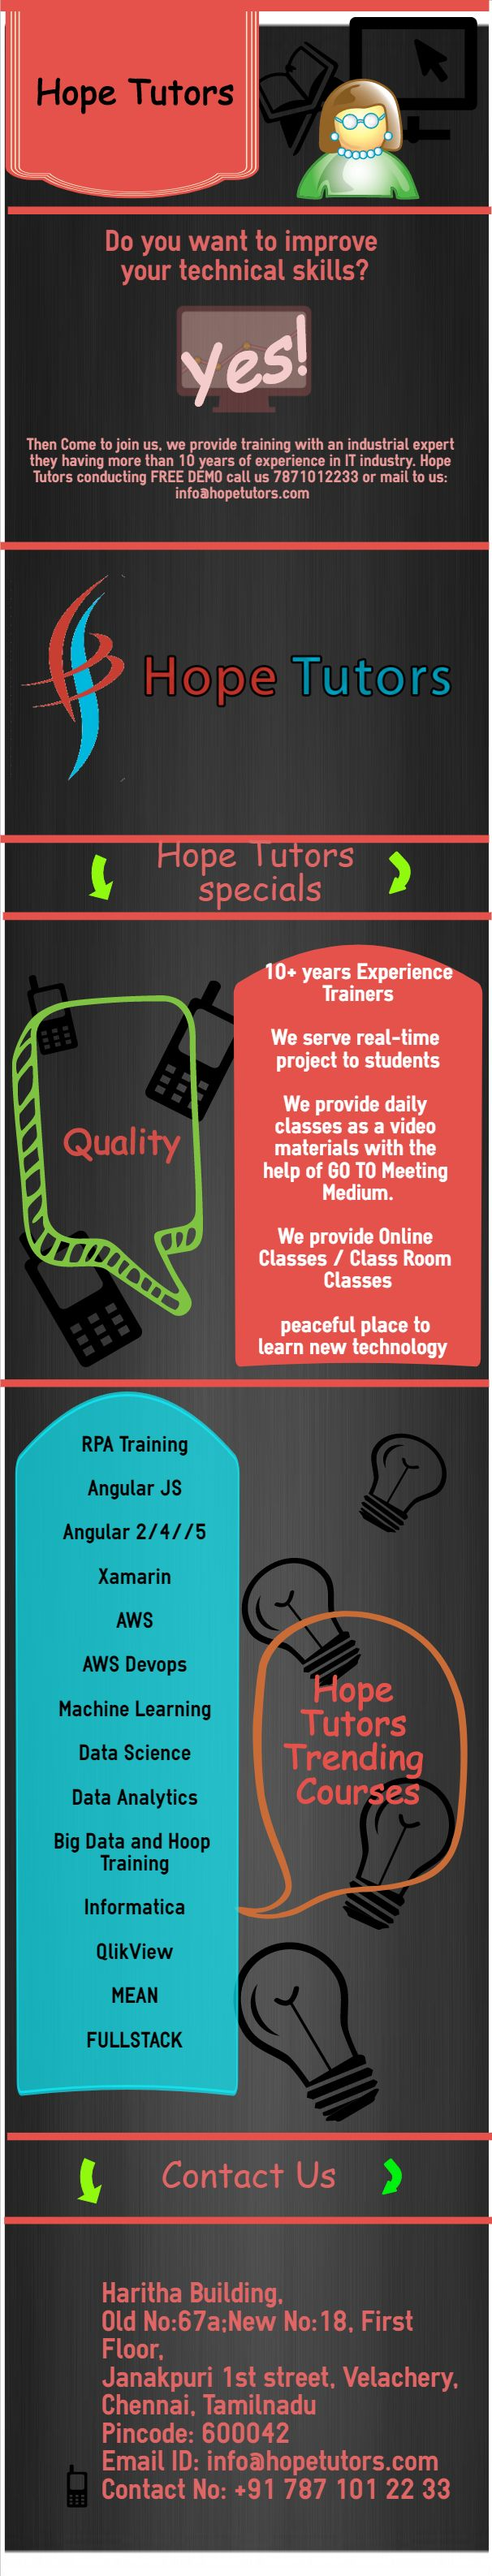 Best classroom and online software training institute for Dot net, Java, RPA, AWS, SEO, Hadoop, Selenium, etc., Call 787012233 for a free demo